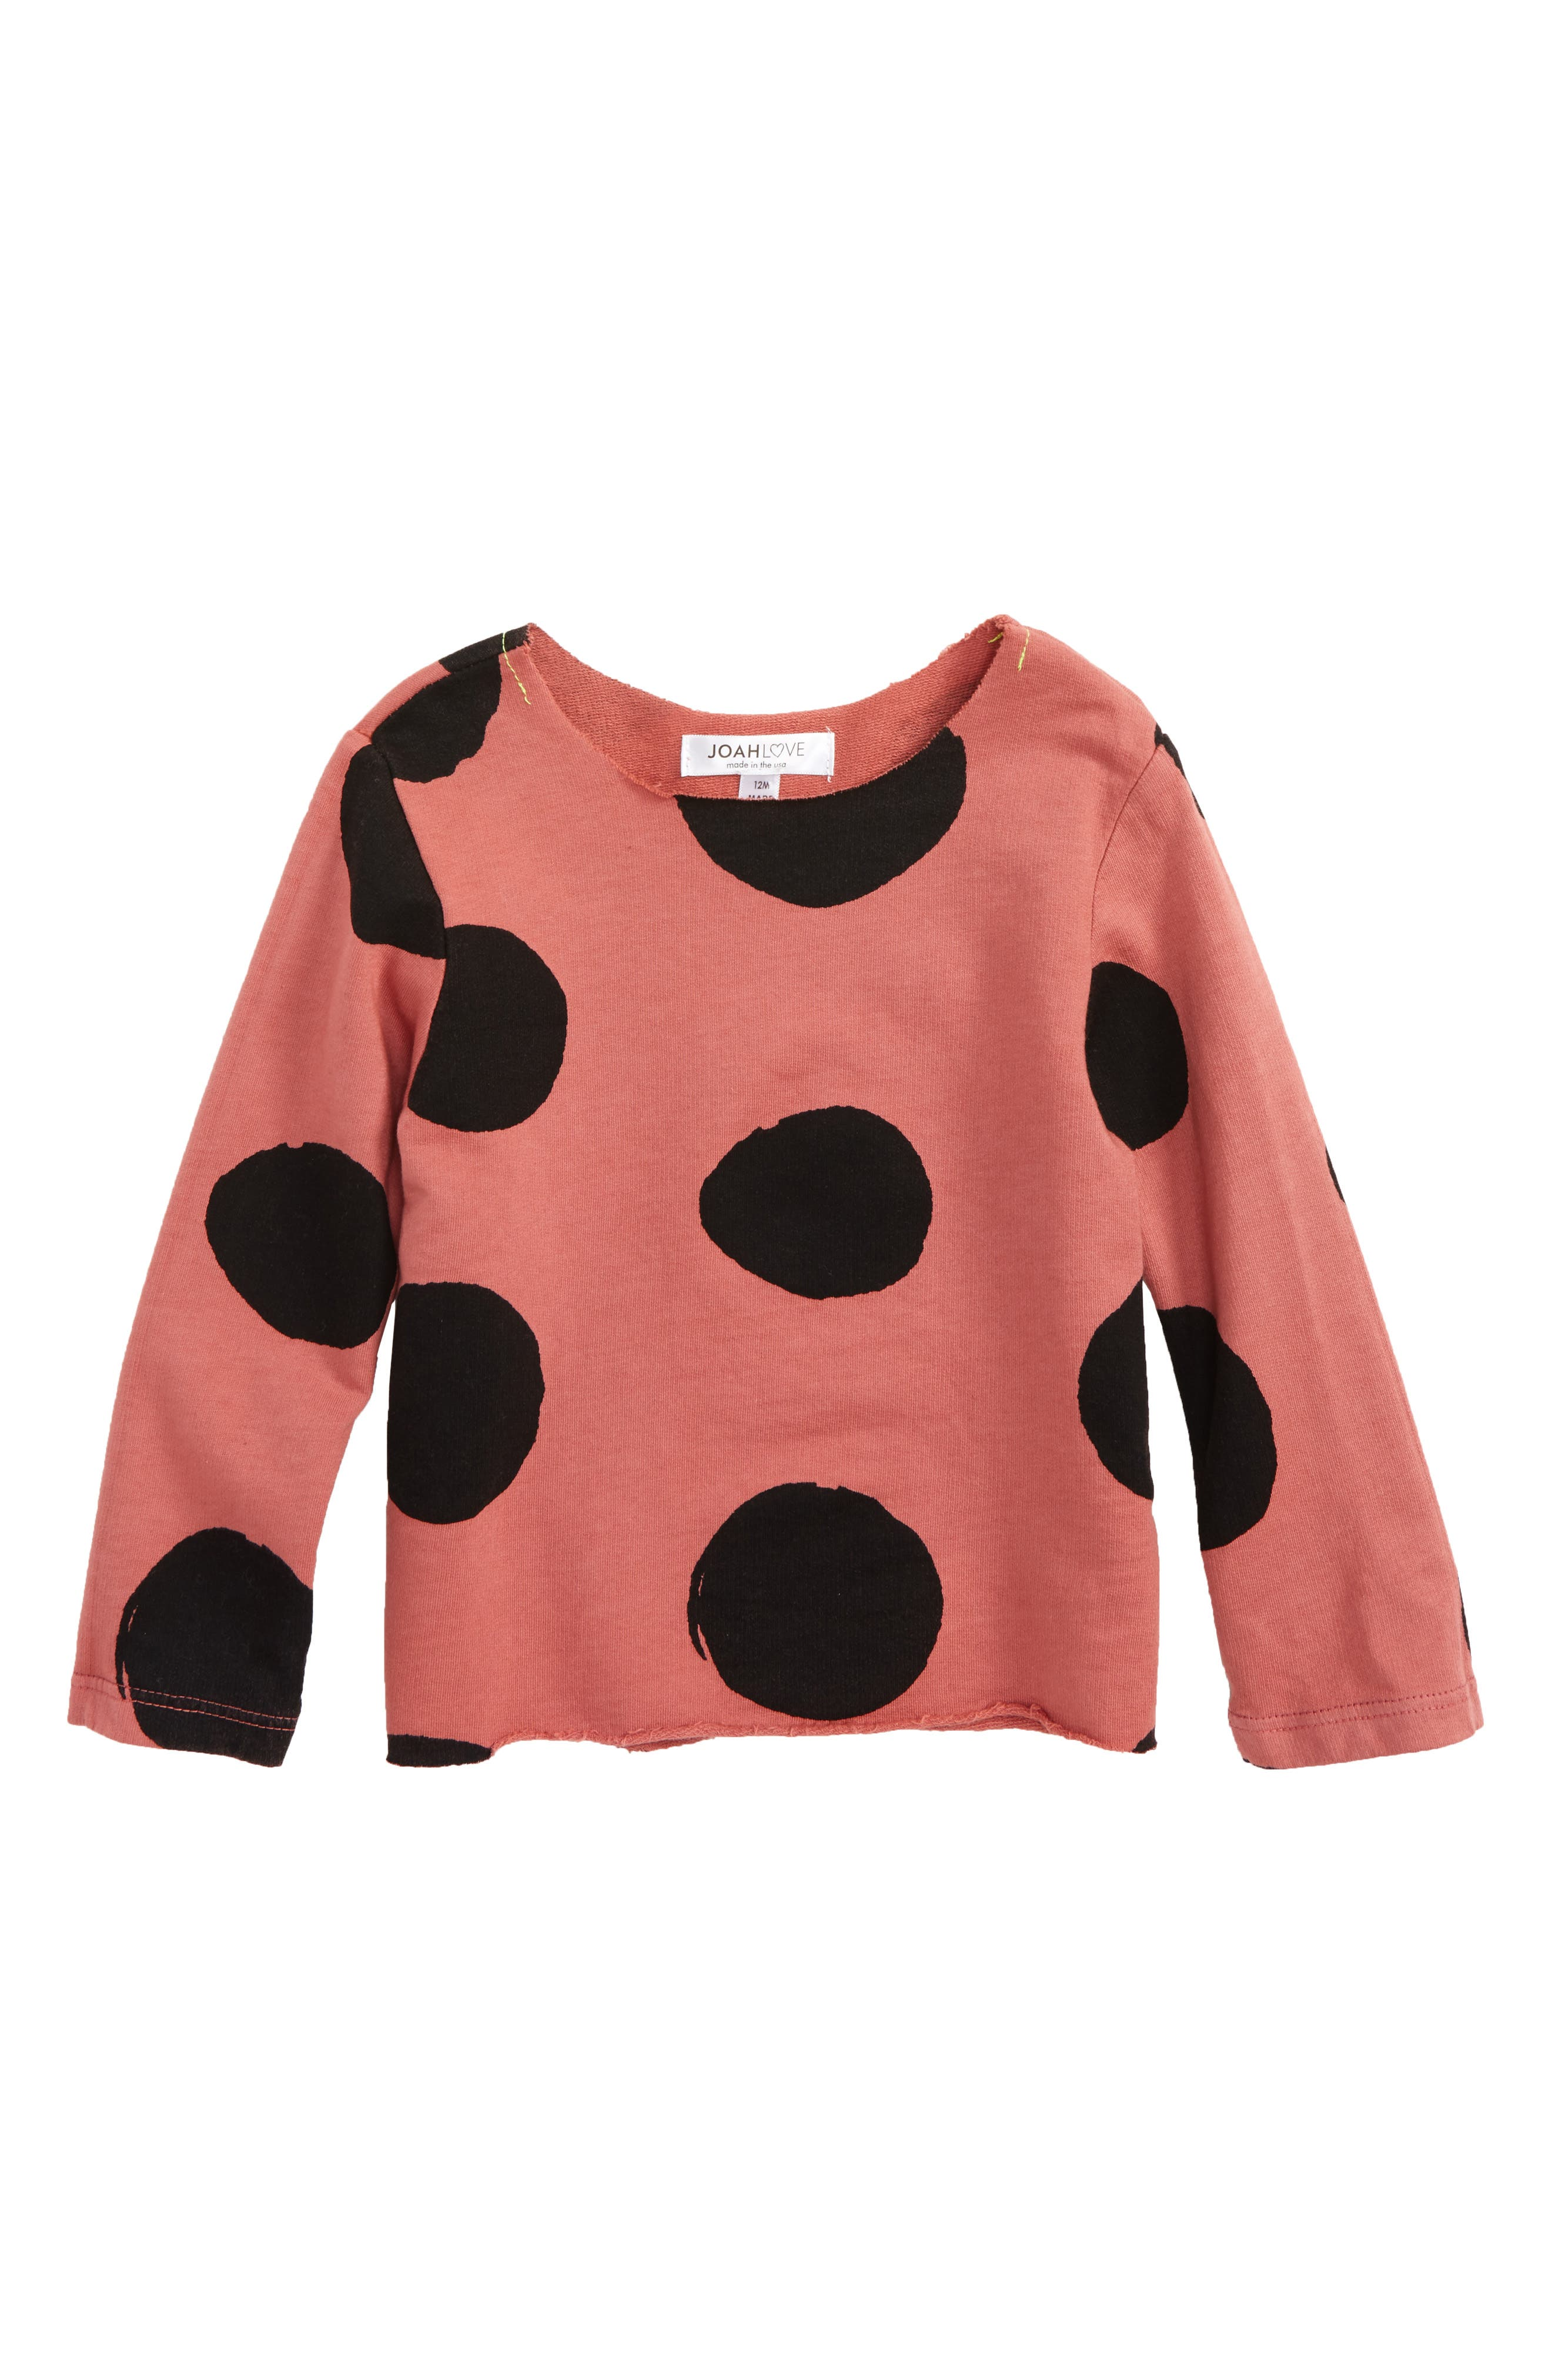 Joah Love Dot Sweatshirt (Baby Girls)